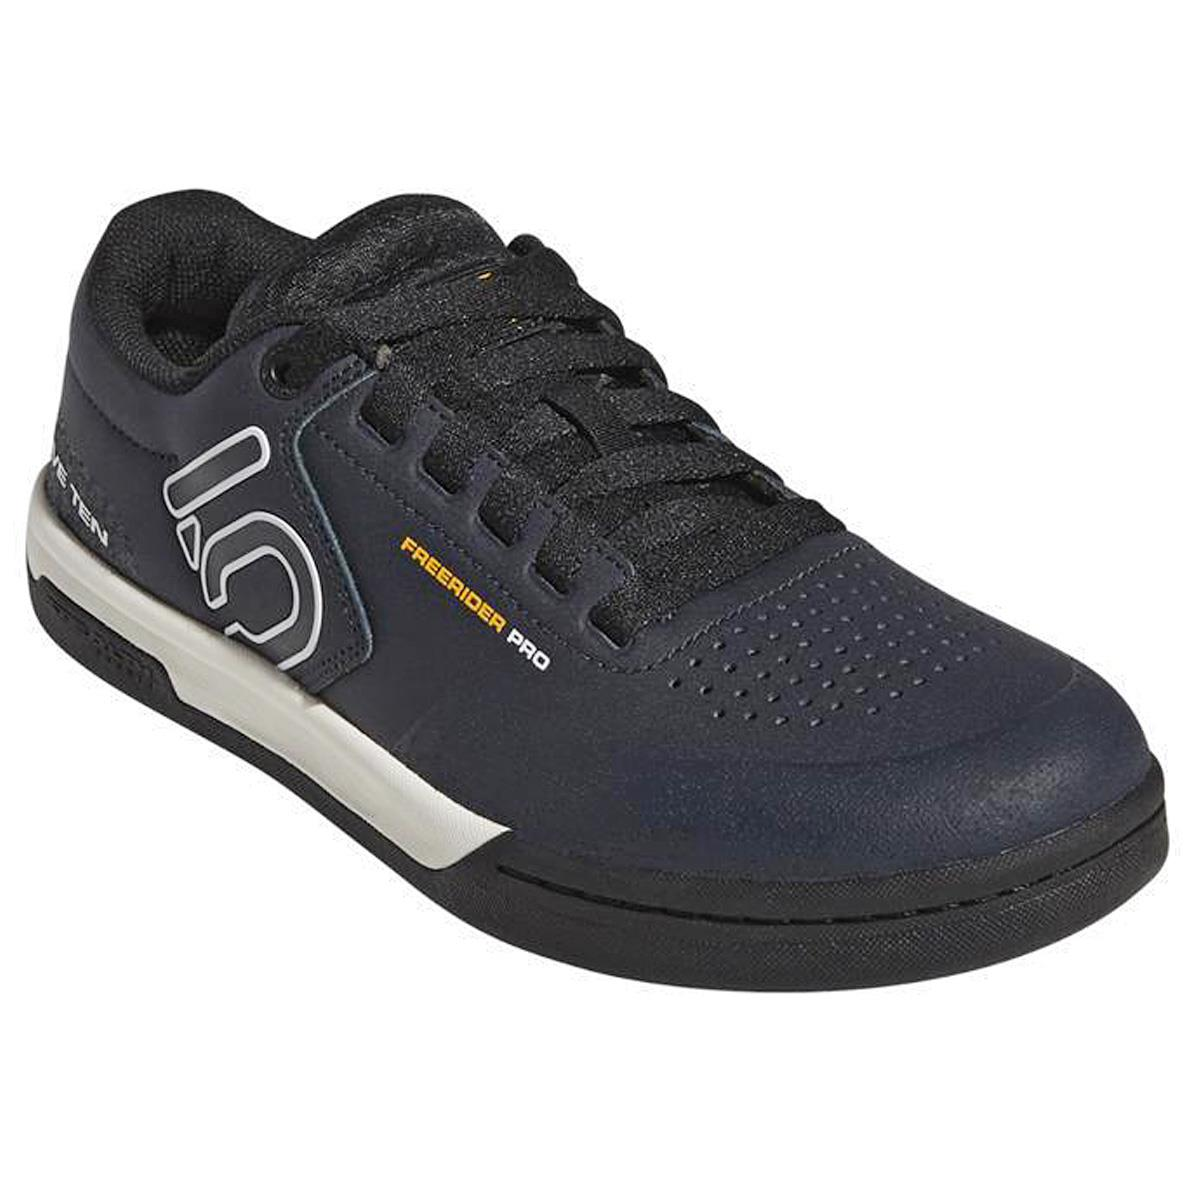 Five Ten MTB-Schuhe Freerider Pro Night Navy/Cloud White/Collegiate Gold